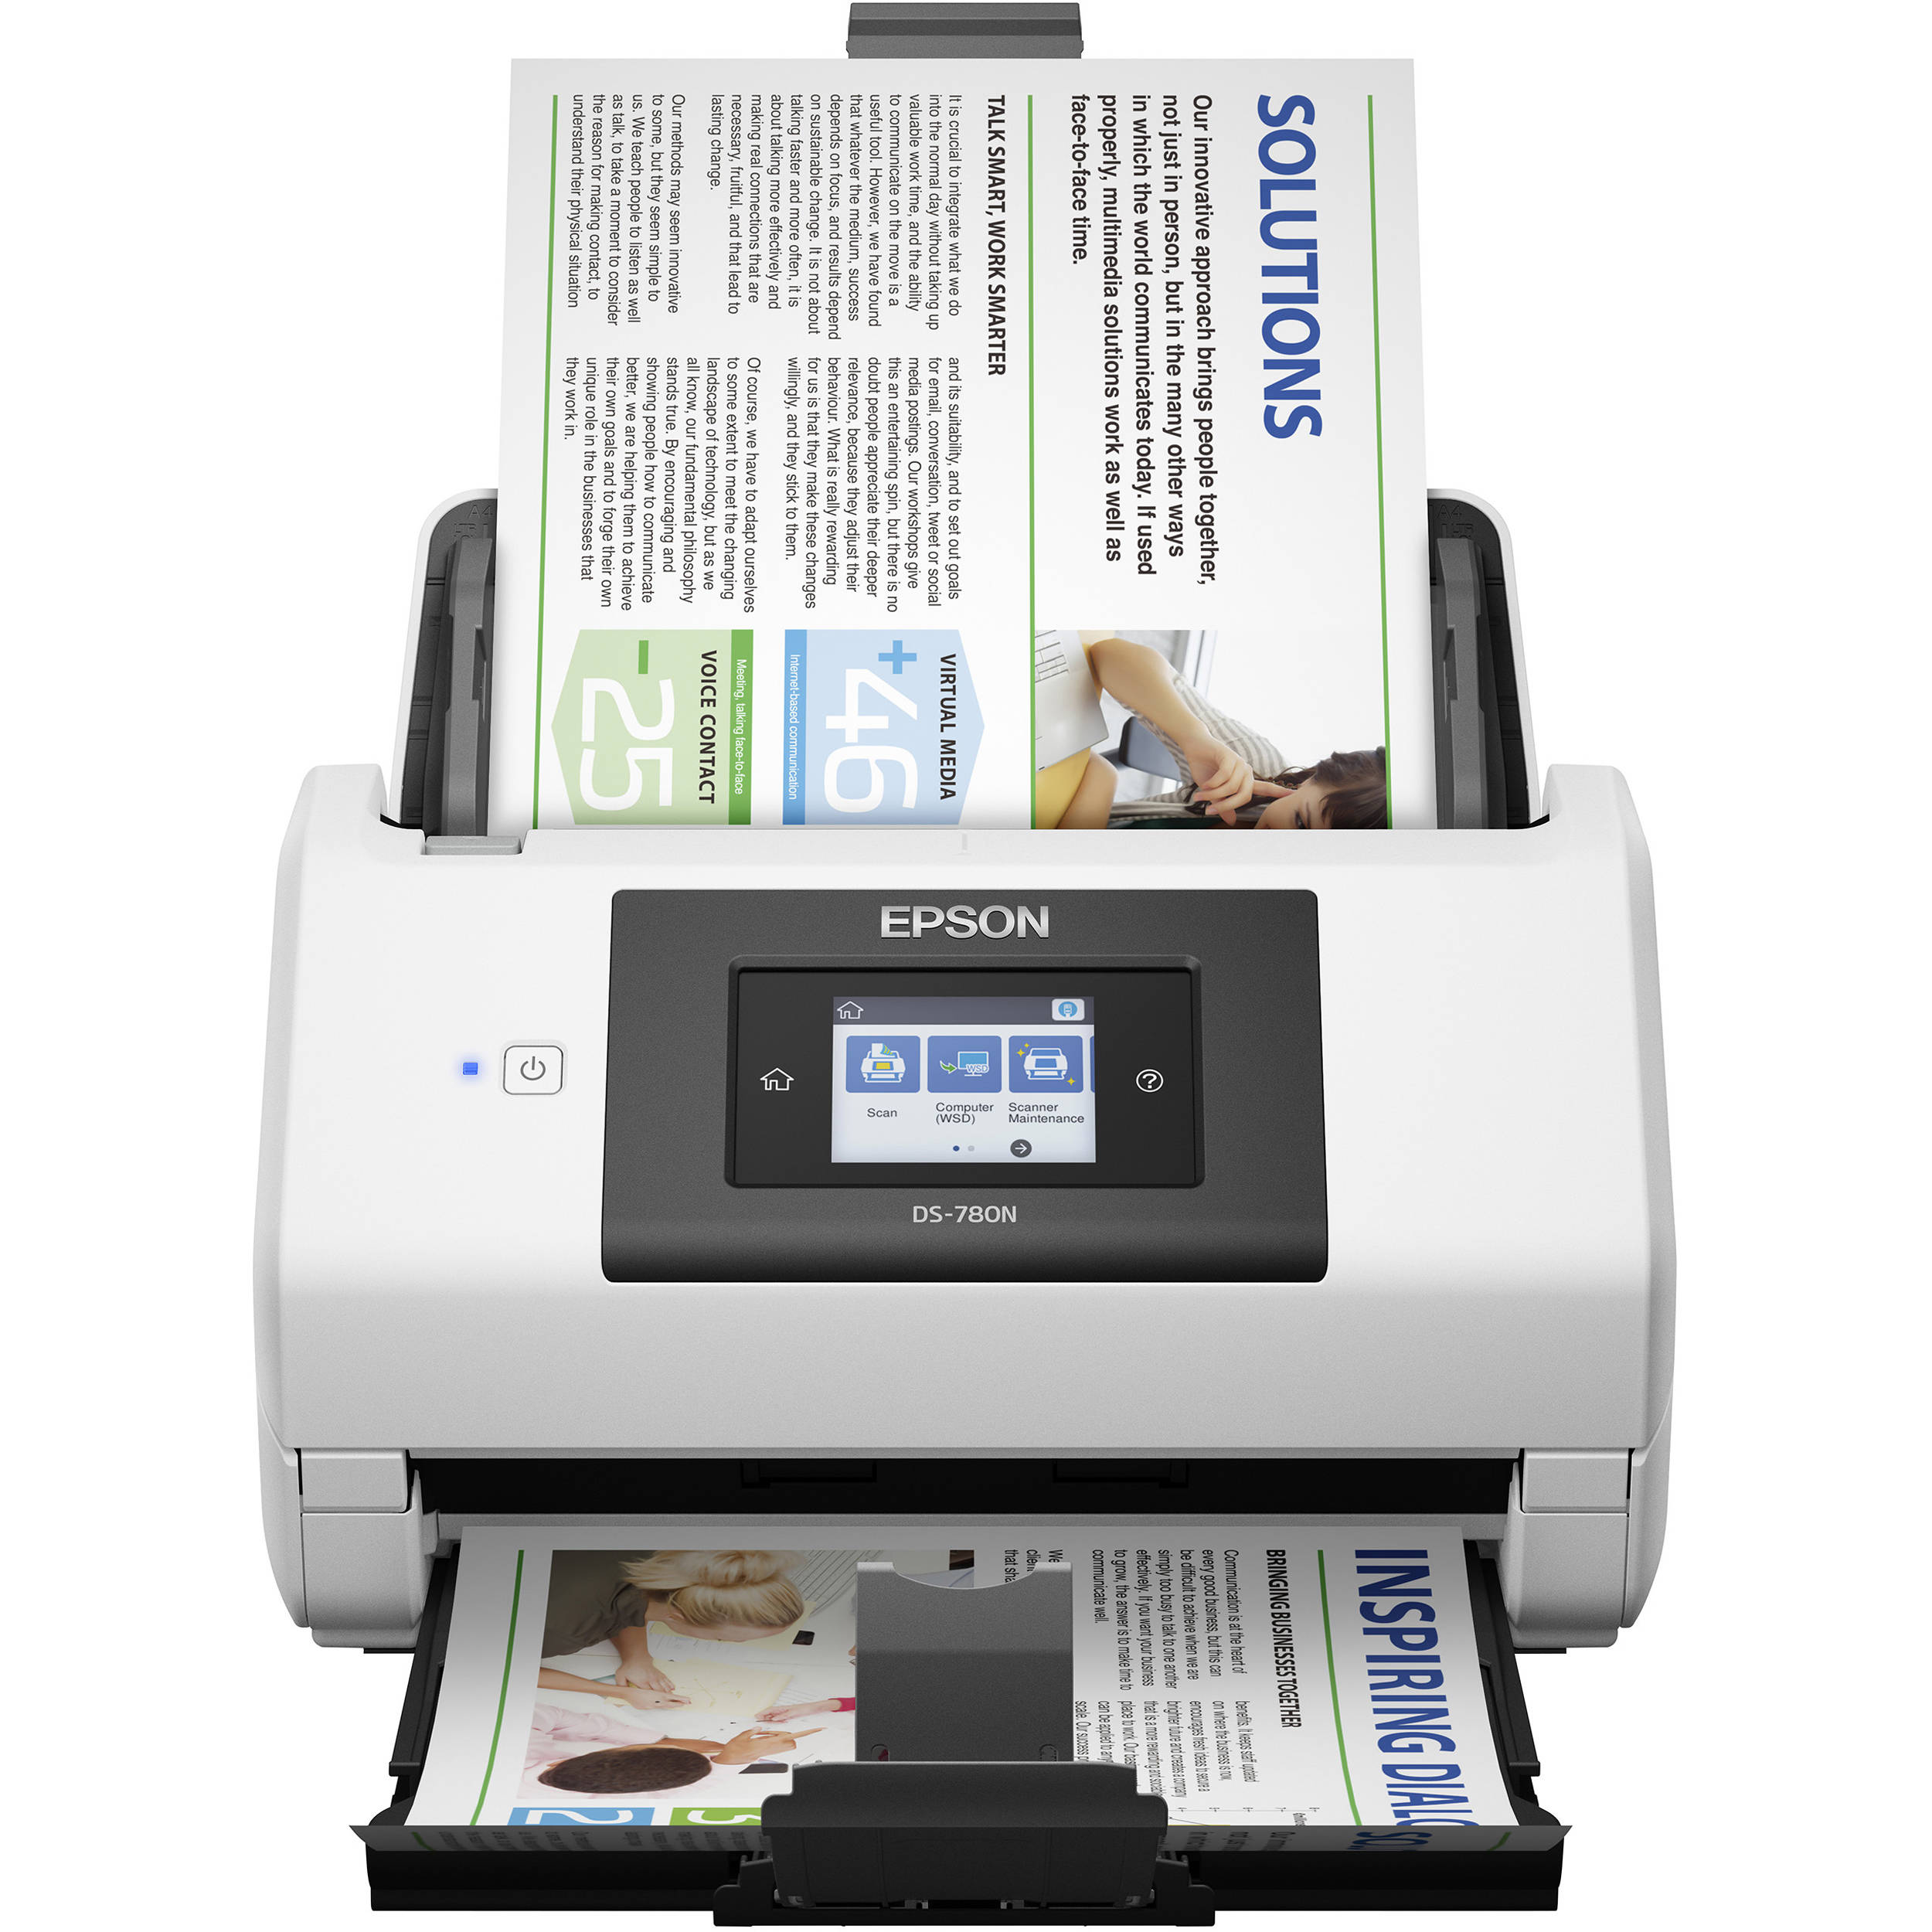 epson ds 780n network color document scanner b11b227201 bh With epson ds 780n network color document scanner